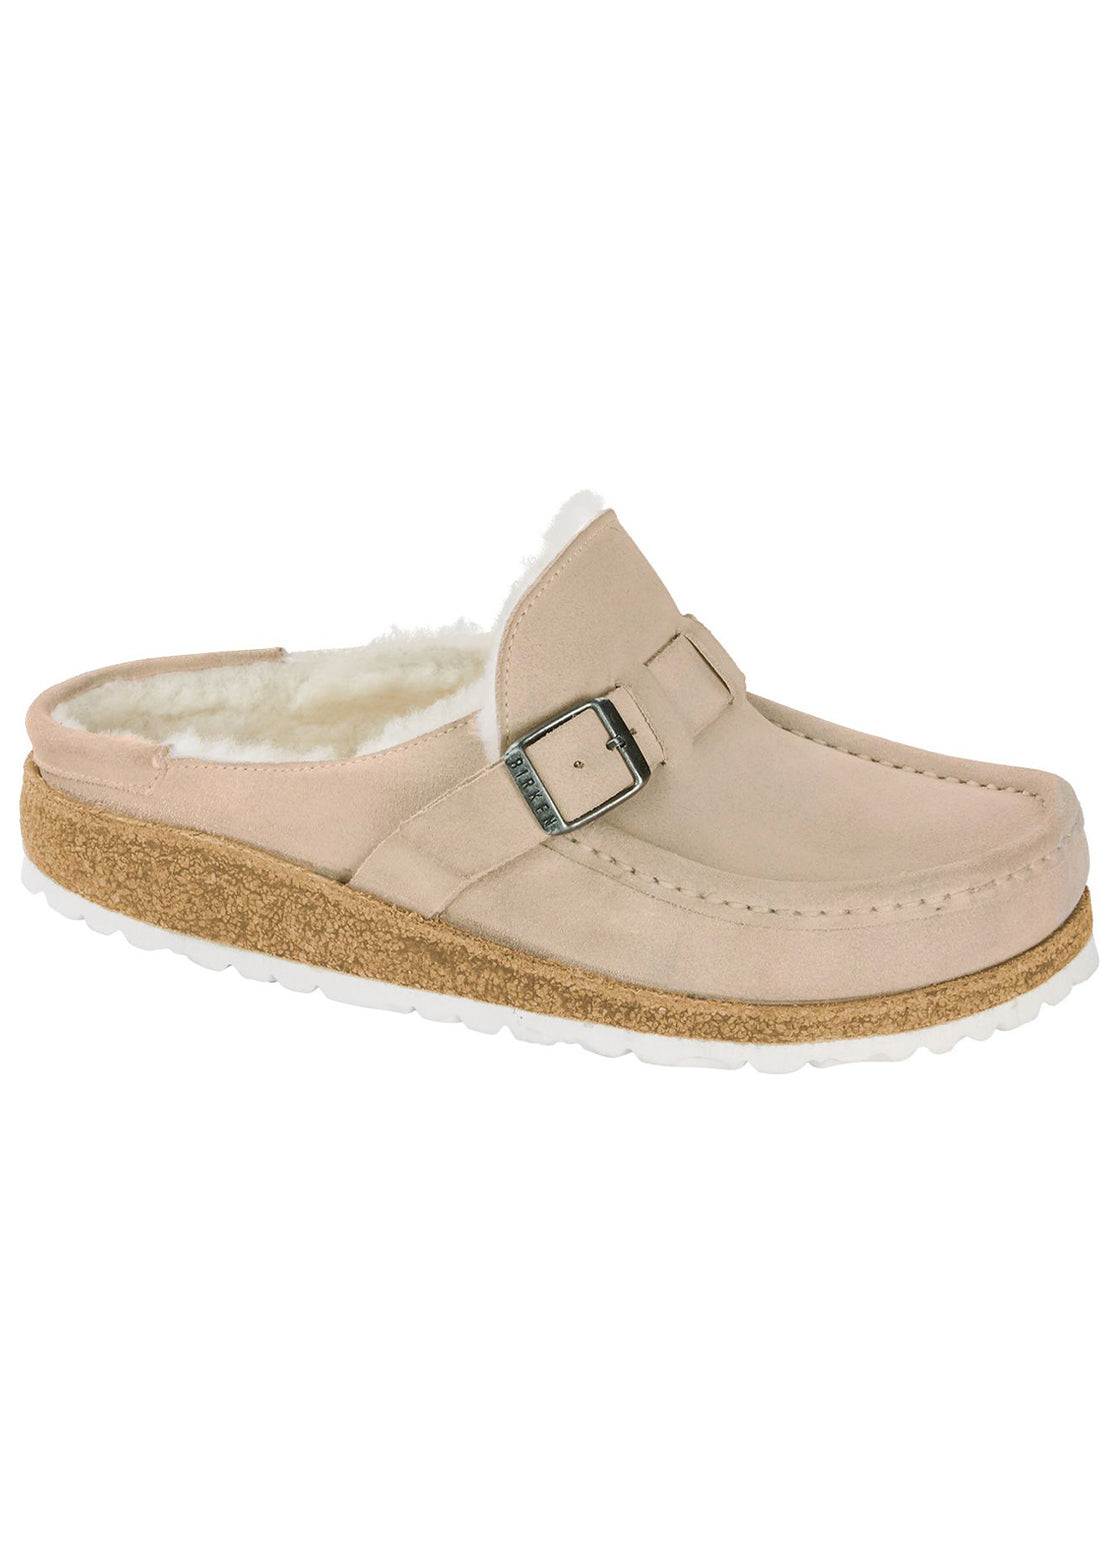 Birkenstock Women's Buckley Shoes Nude